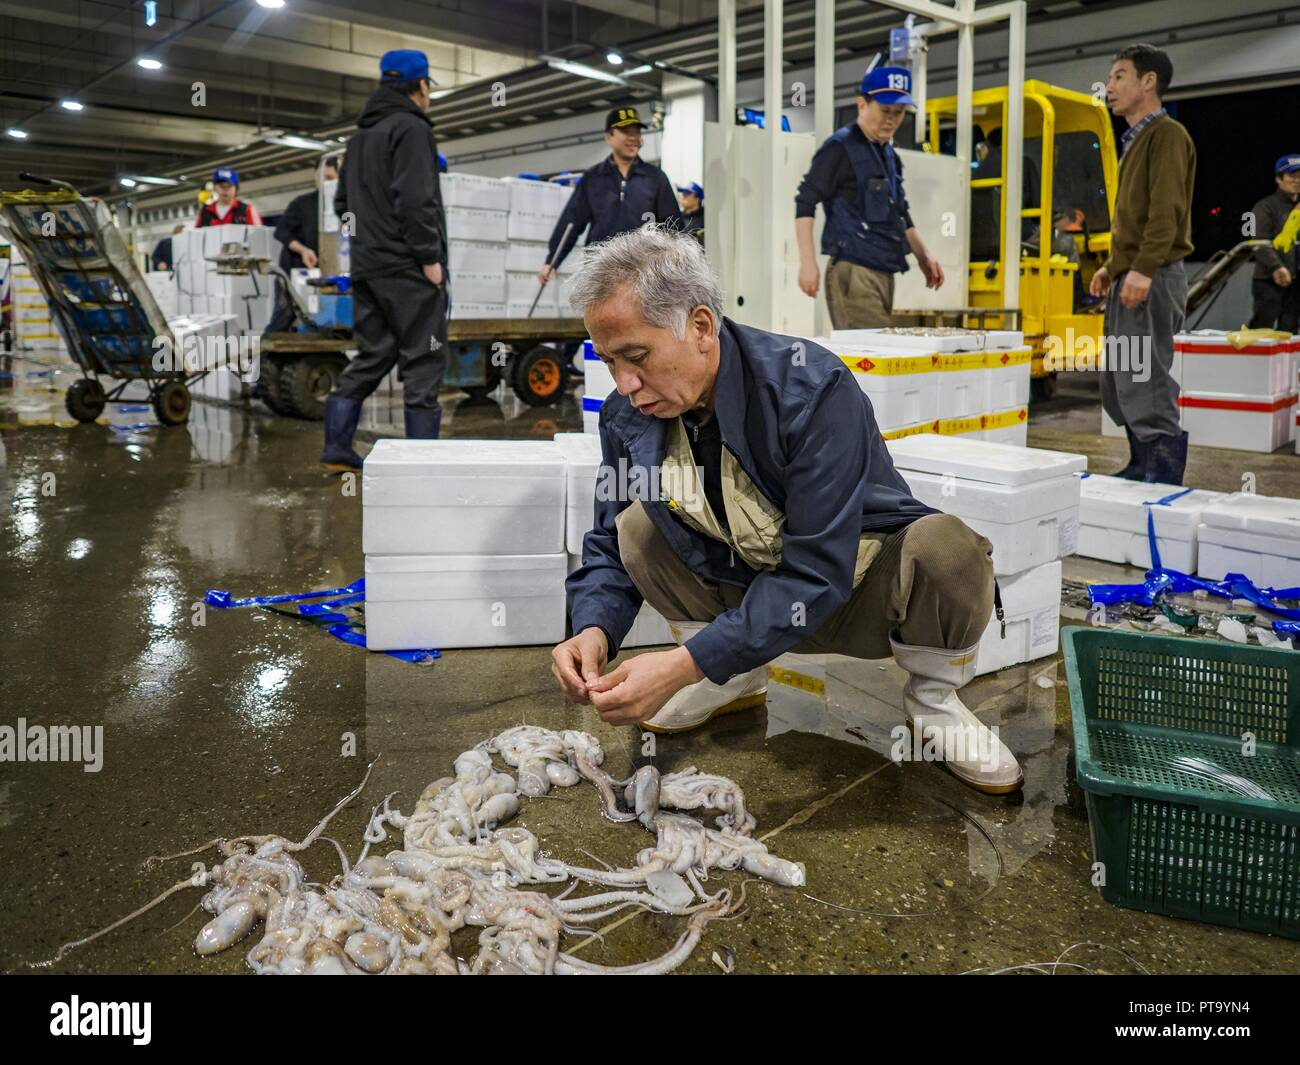 Seoul, Gyeonggi, South Korea. 9th Oct, 2018. A man cleans octopi after the octopus auction in the Noryangjin Fish Market. The auctions start about 01.00 AM and last until 05.00 AM. Noryangjin Fish Market is the largest fish market in Seoul and has been in operation since 1927. It opened in the current location in 1971 and was renovated in 2015. The market serves both retail and wholesale customers and has become a tourist attraction in recent years. Credit: Jack Kurtz/ZUMA Wire/Alamy Live News - Stock Image